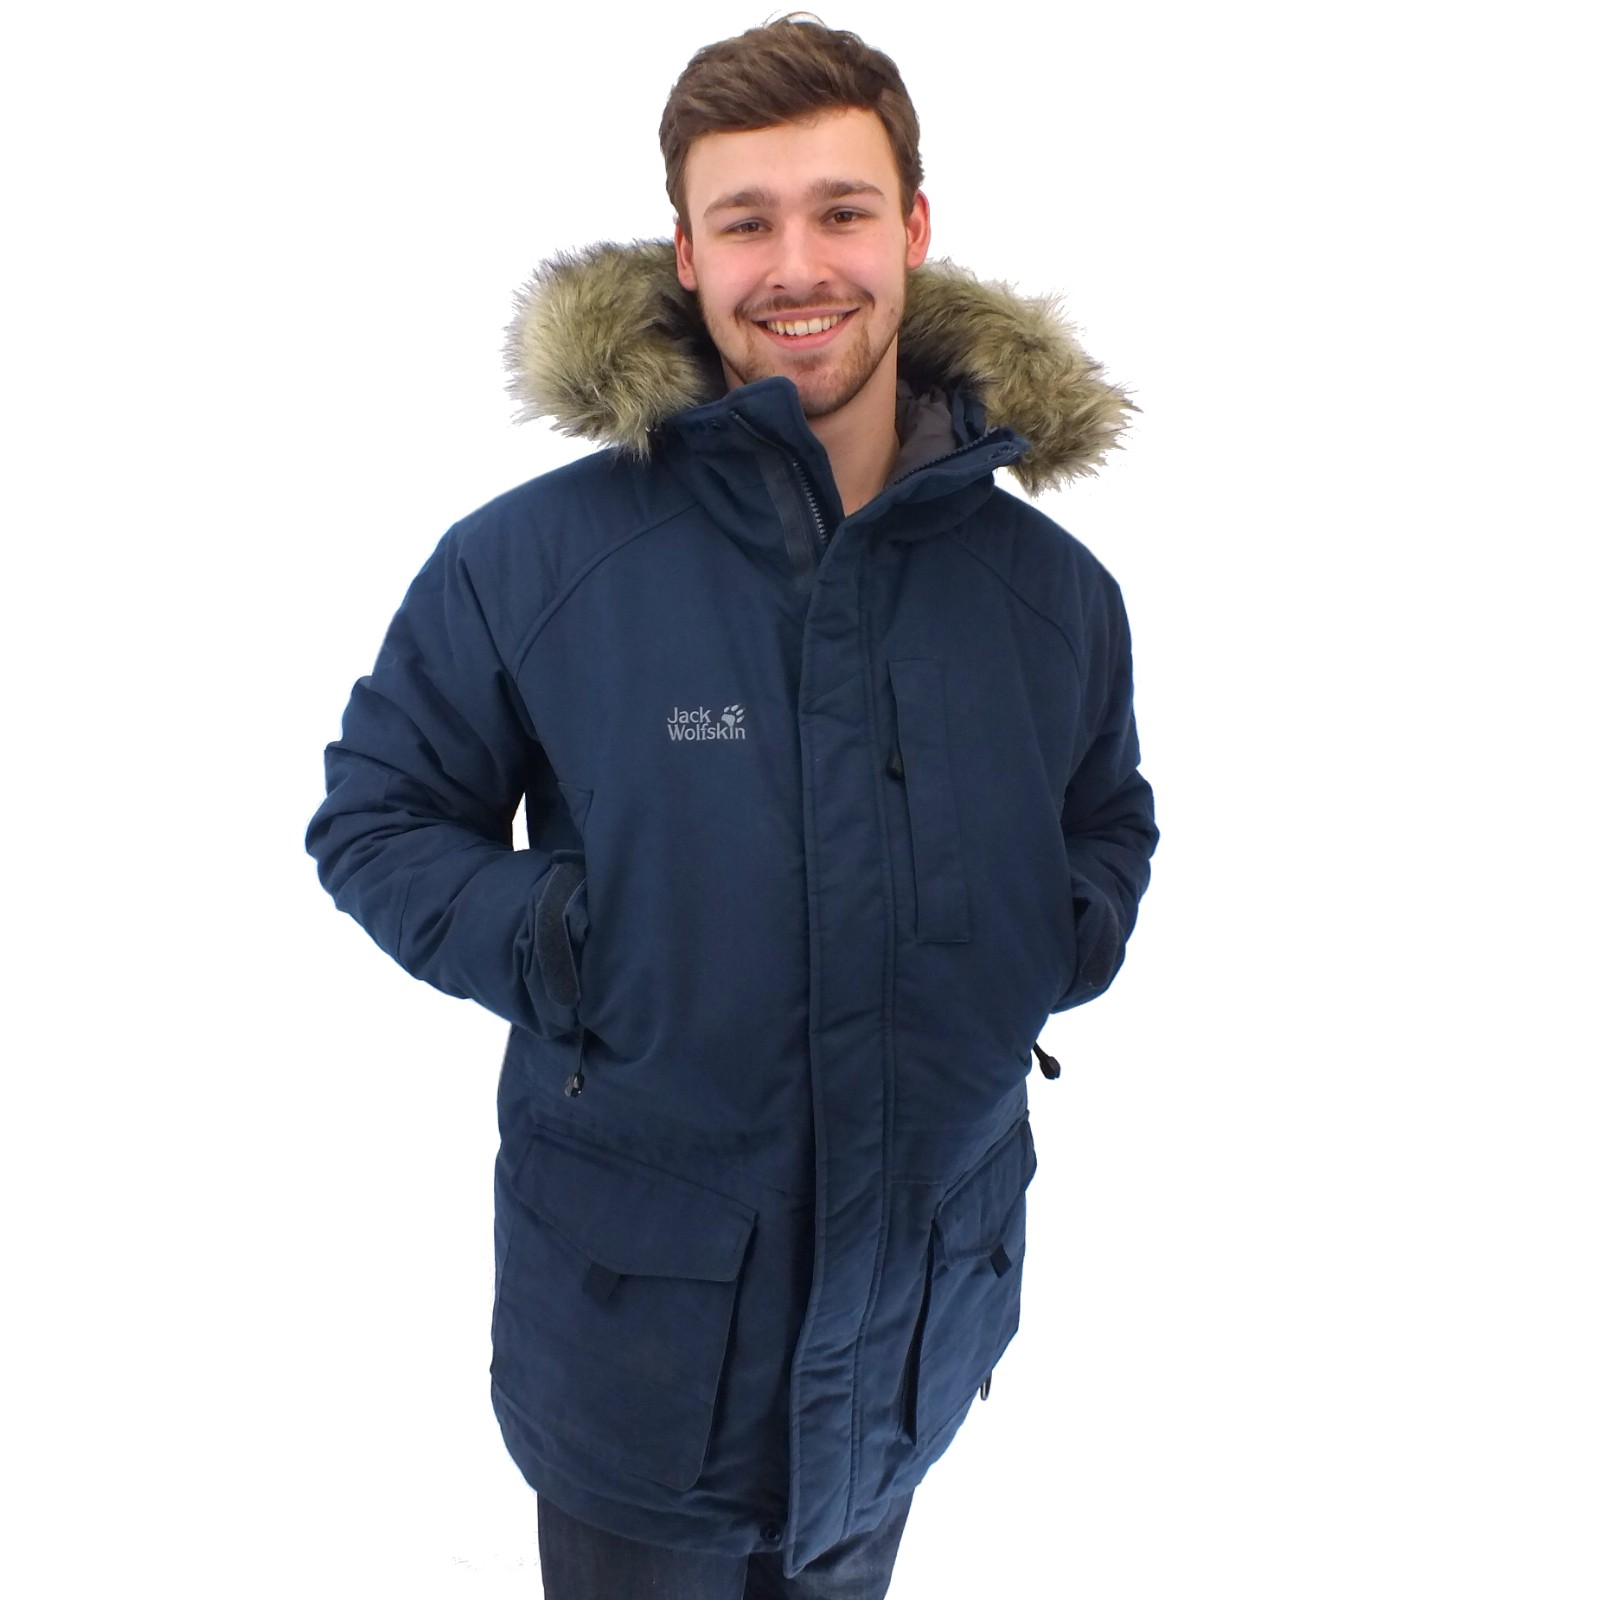 jack wolfskin arctic bay parka jacke winterjacke. Black Bedroom Furniture Sets. Home Design Ideas